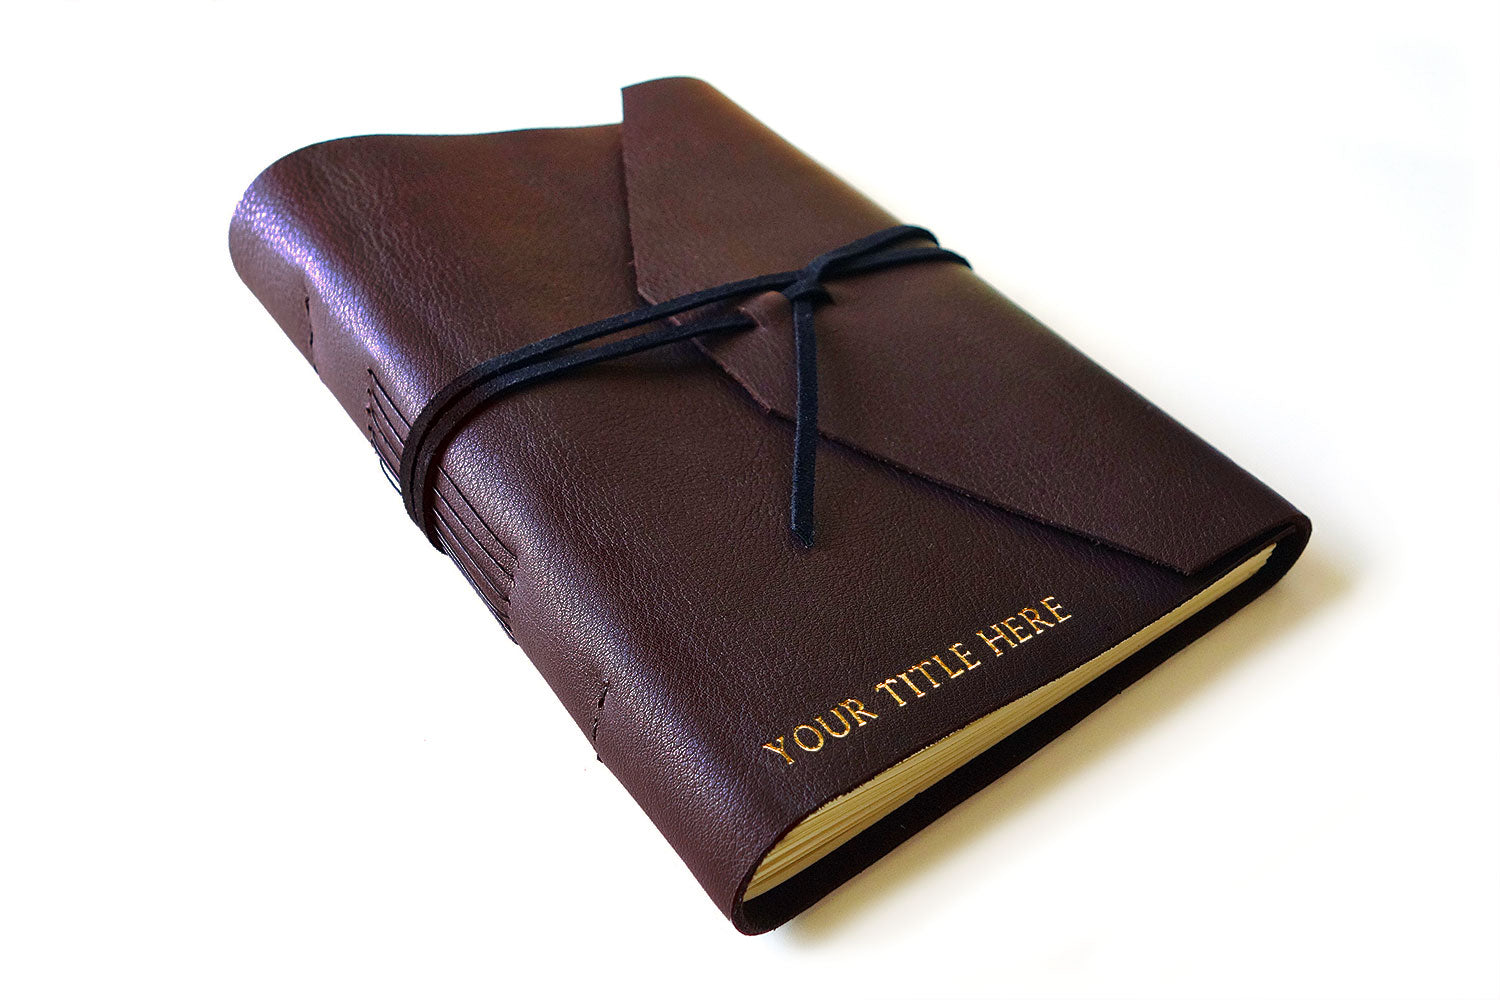 rustic leather guest book with Your text here - Personalised rustic leather guest book in dark brown leather from Bookshell